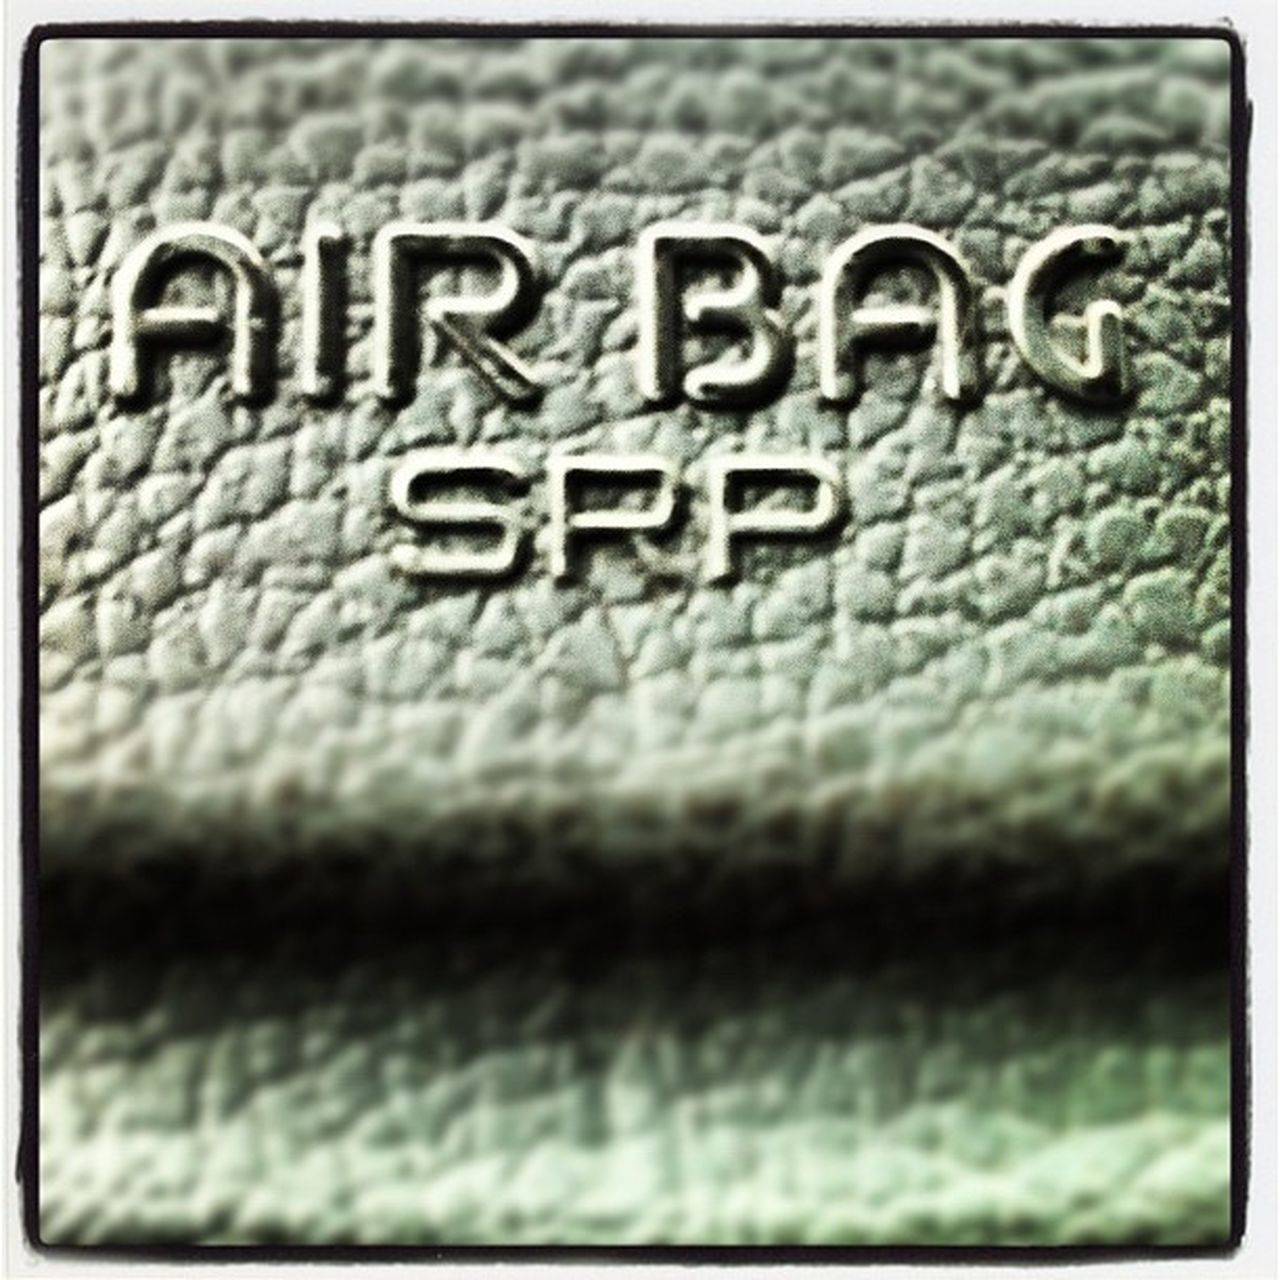 Air bag Nowhere Fromthestreets Iphonephoto Instaily parking car inutility